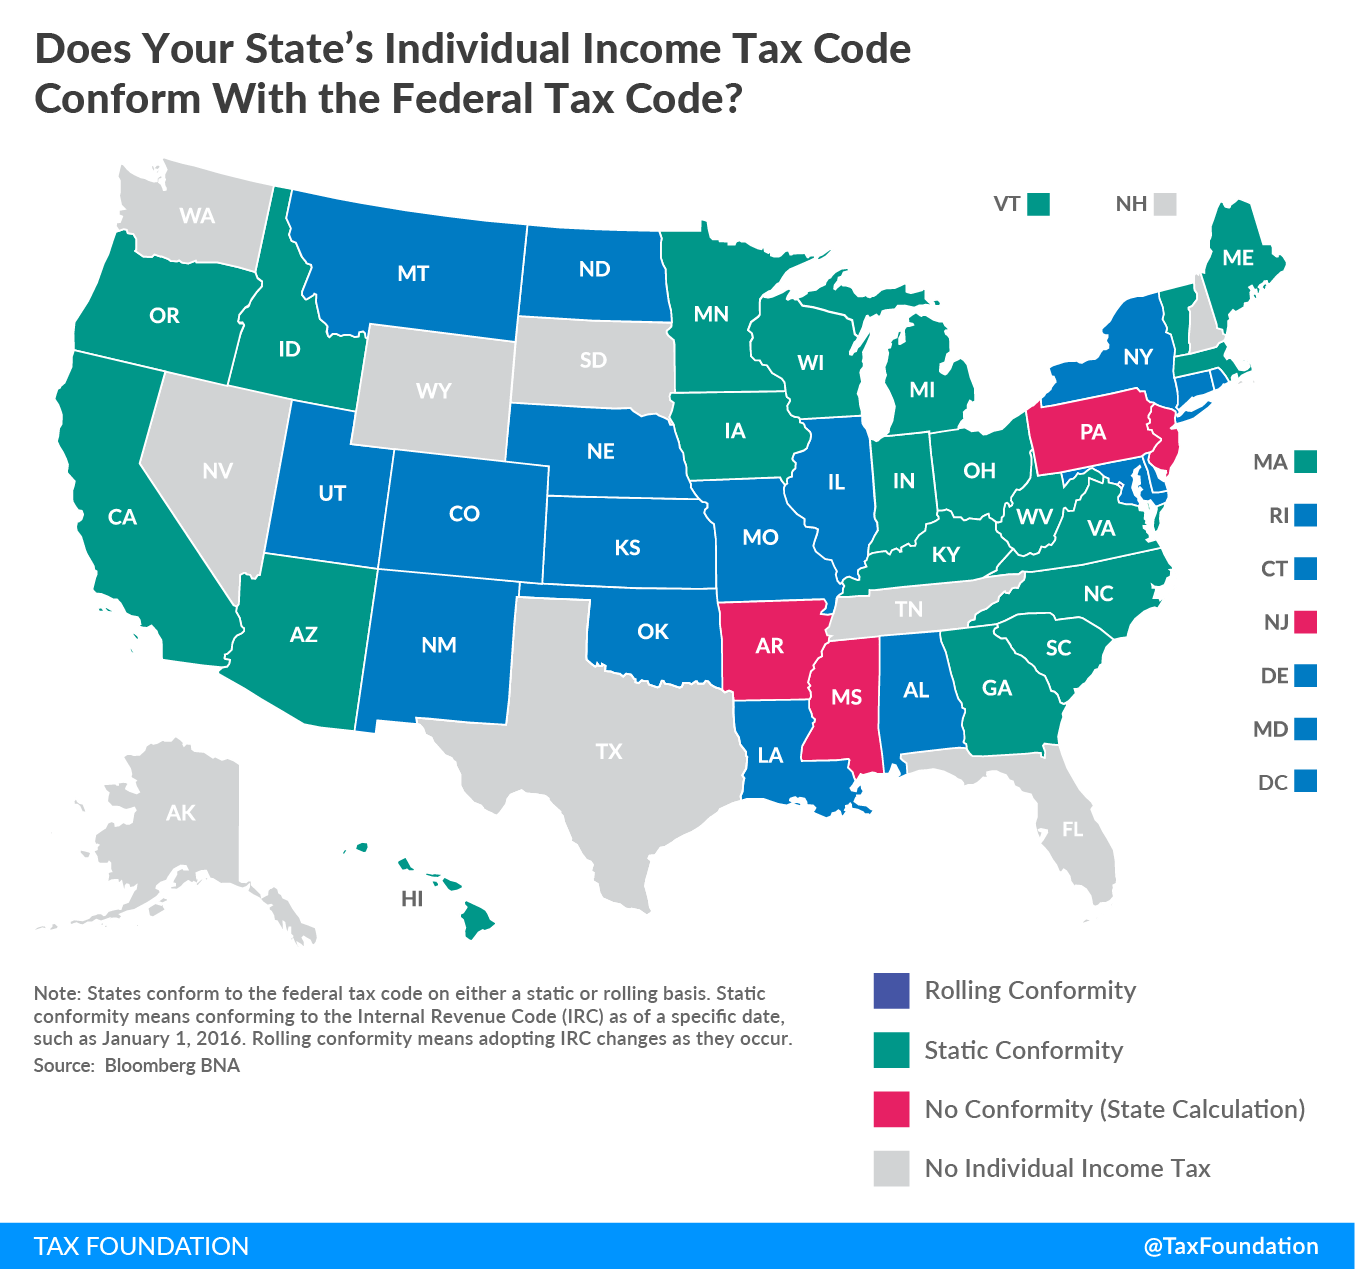 Individual Income Tax Conformity by State